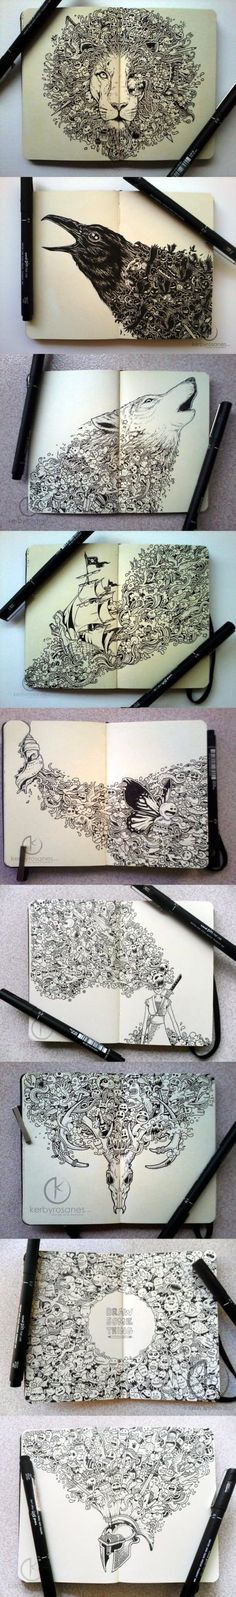 art sketch book pen and ink illustrations